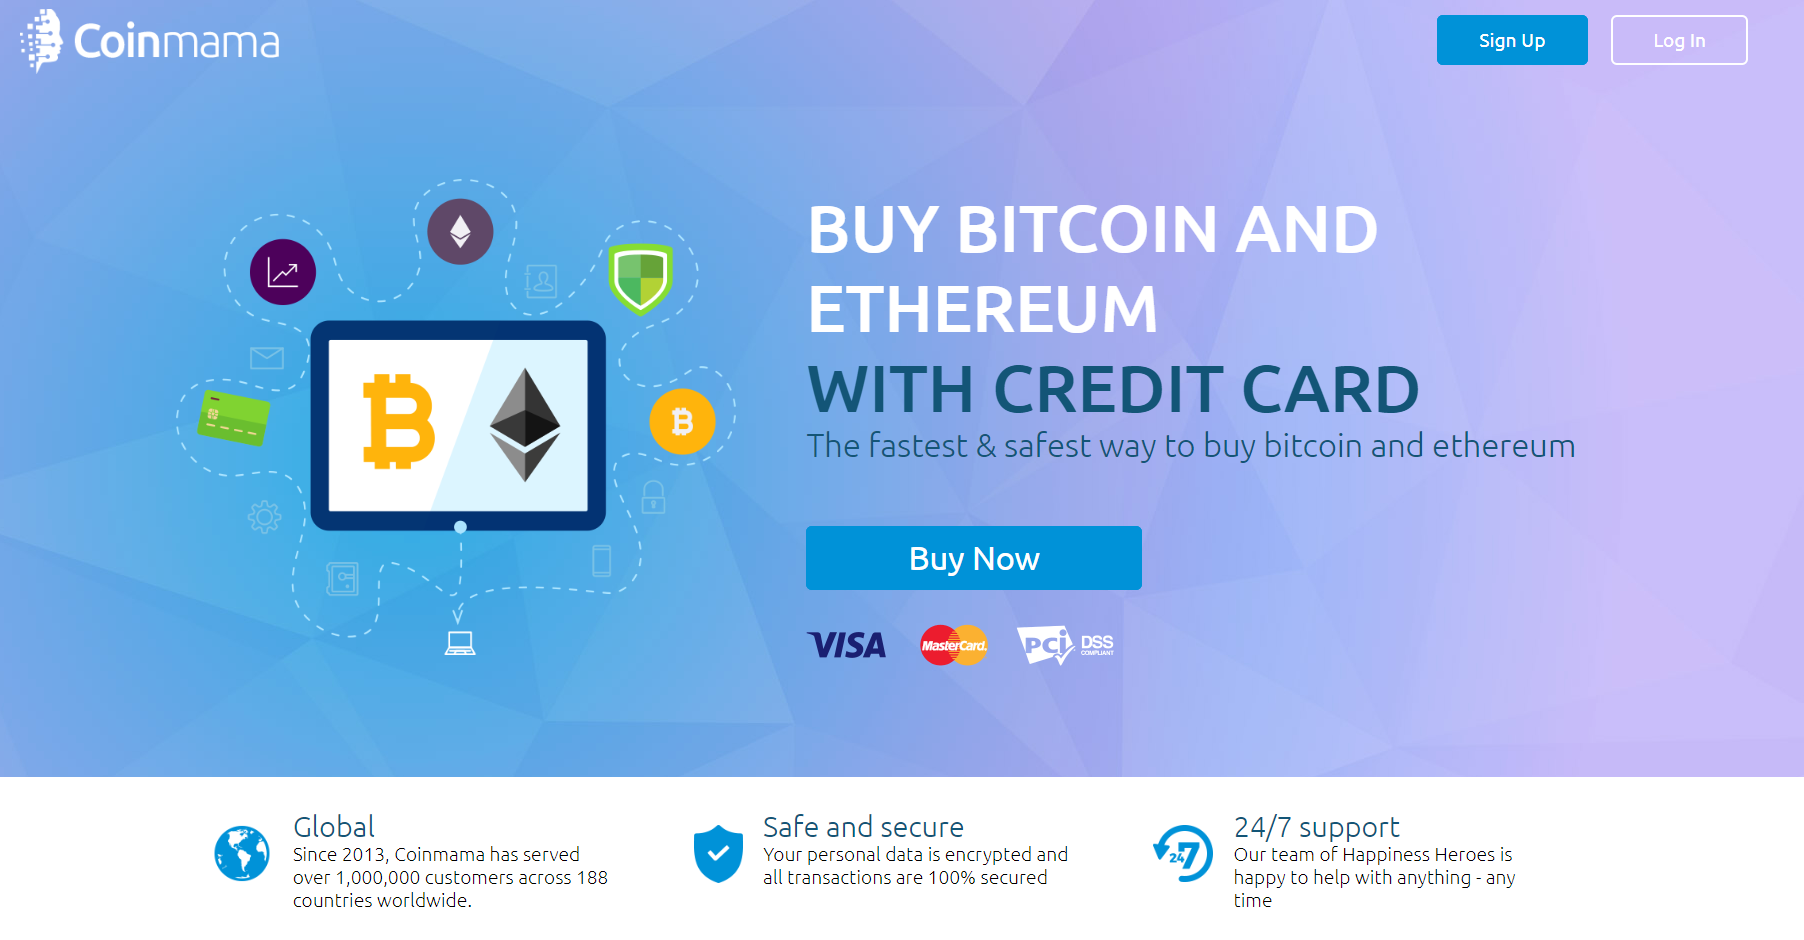 Buy BitCoin and Ethereum with credit card